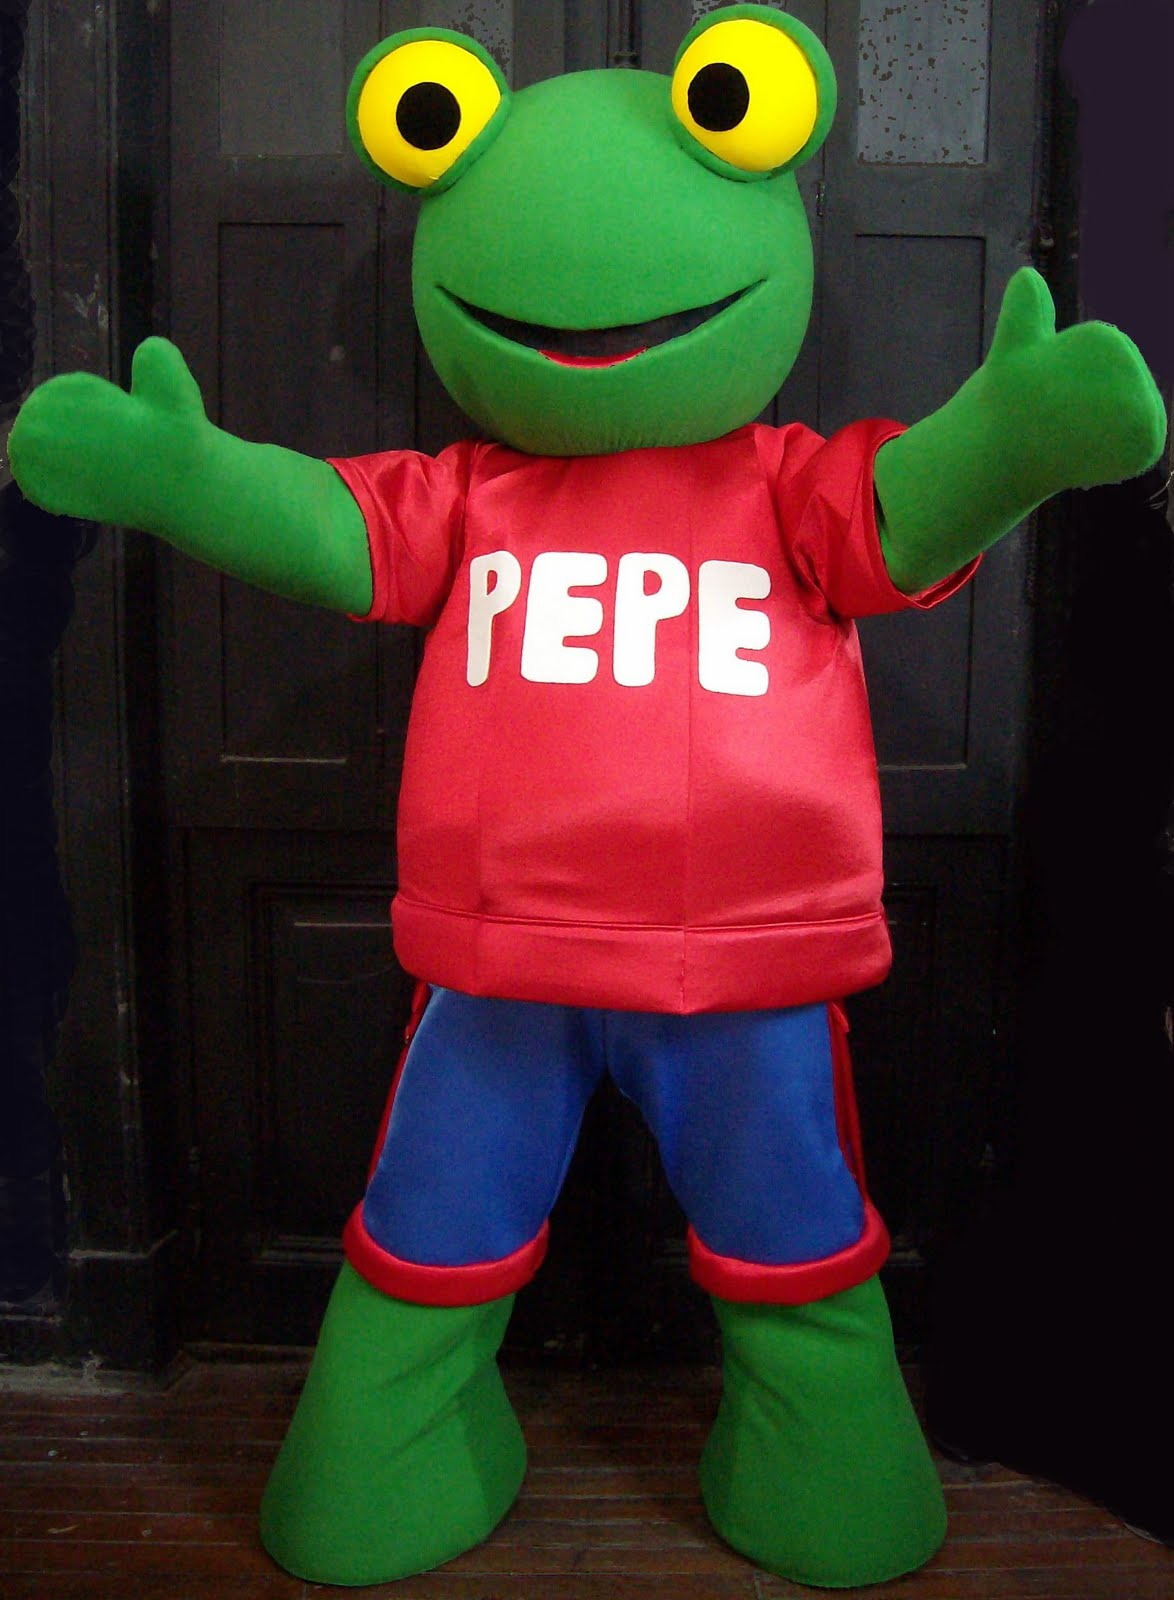 sapo pepe 5 - photo #21